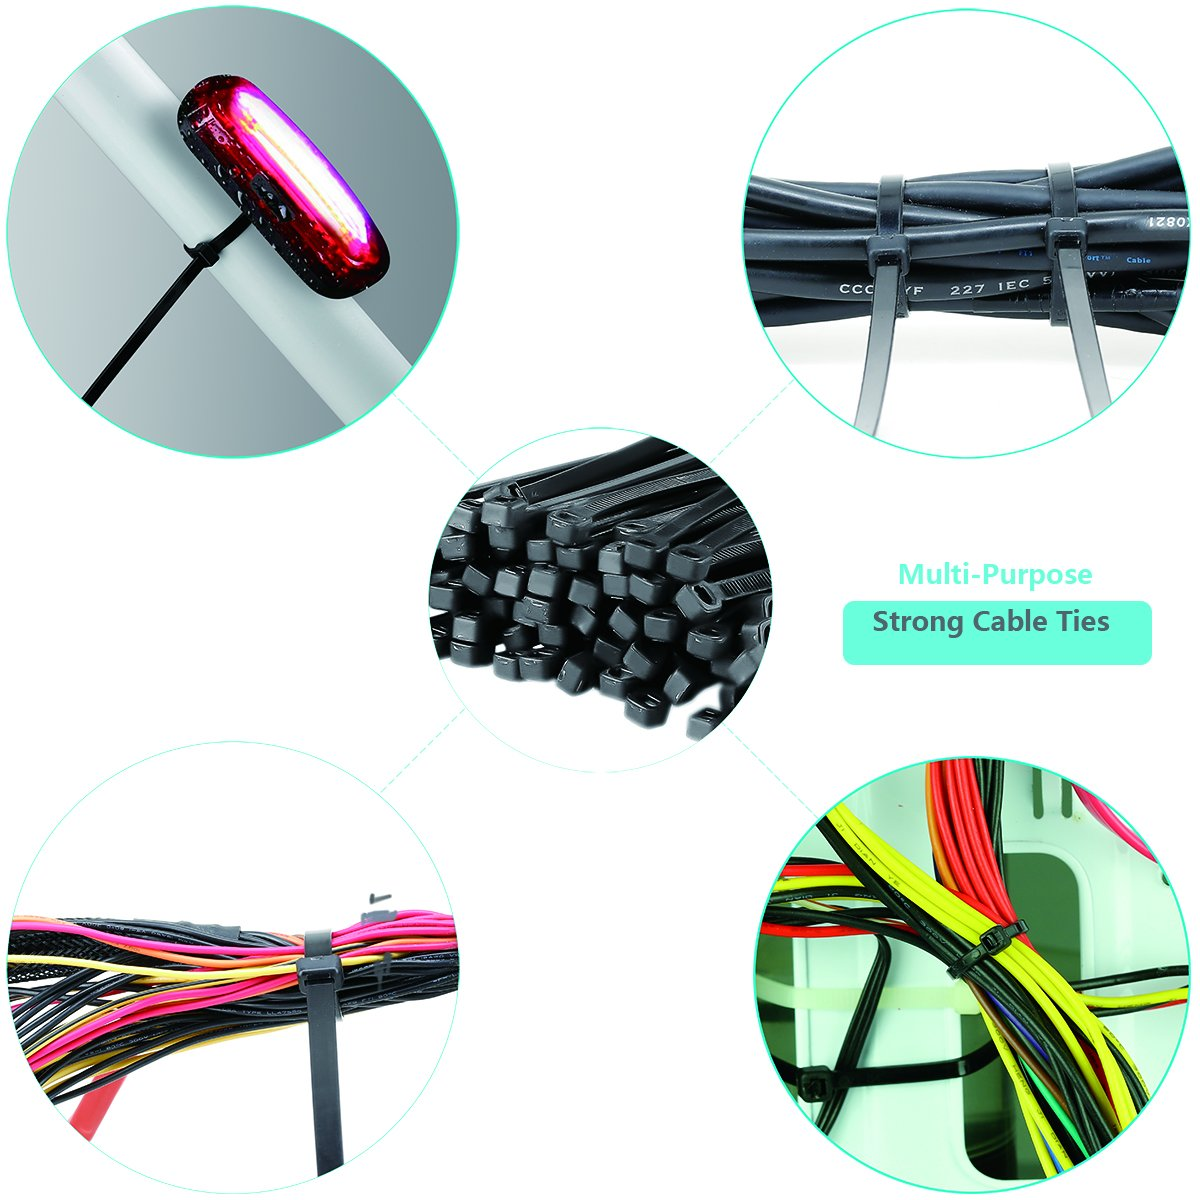 Cable Zip Ties Black 100 Pcs 10 Inch Flexible Nylon Wire Ties Ajustable Cable Cord Management Multi-Purpose Strong Self Locking Cable Ties For Electrical Accessories